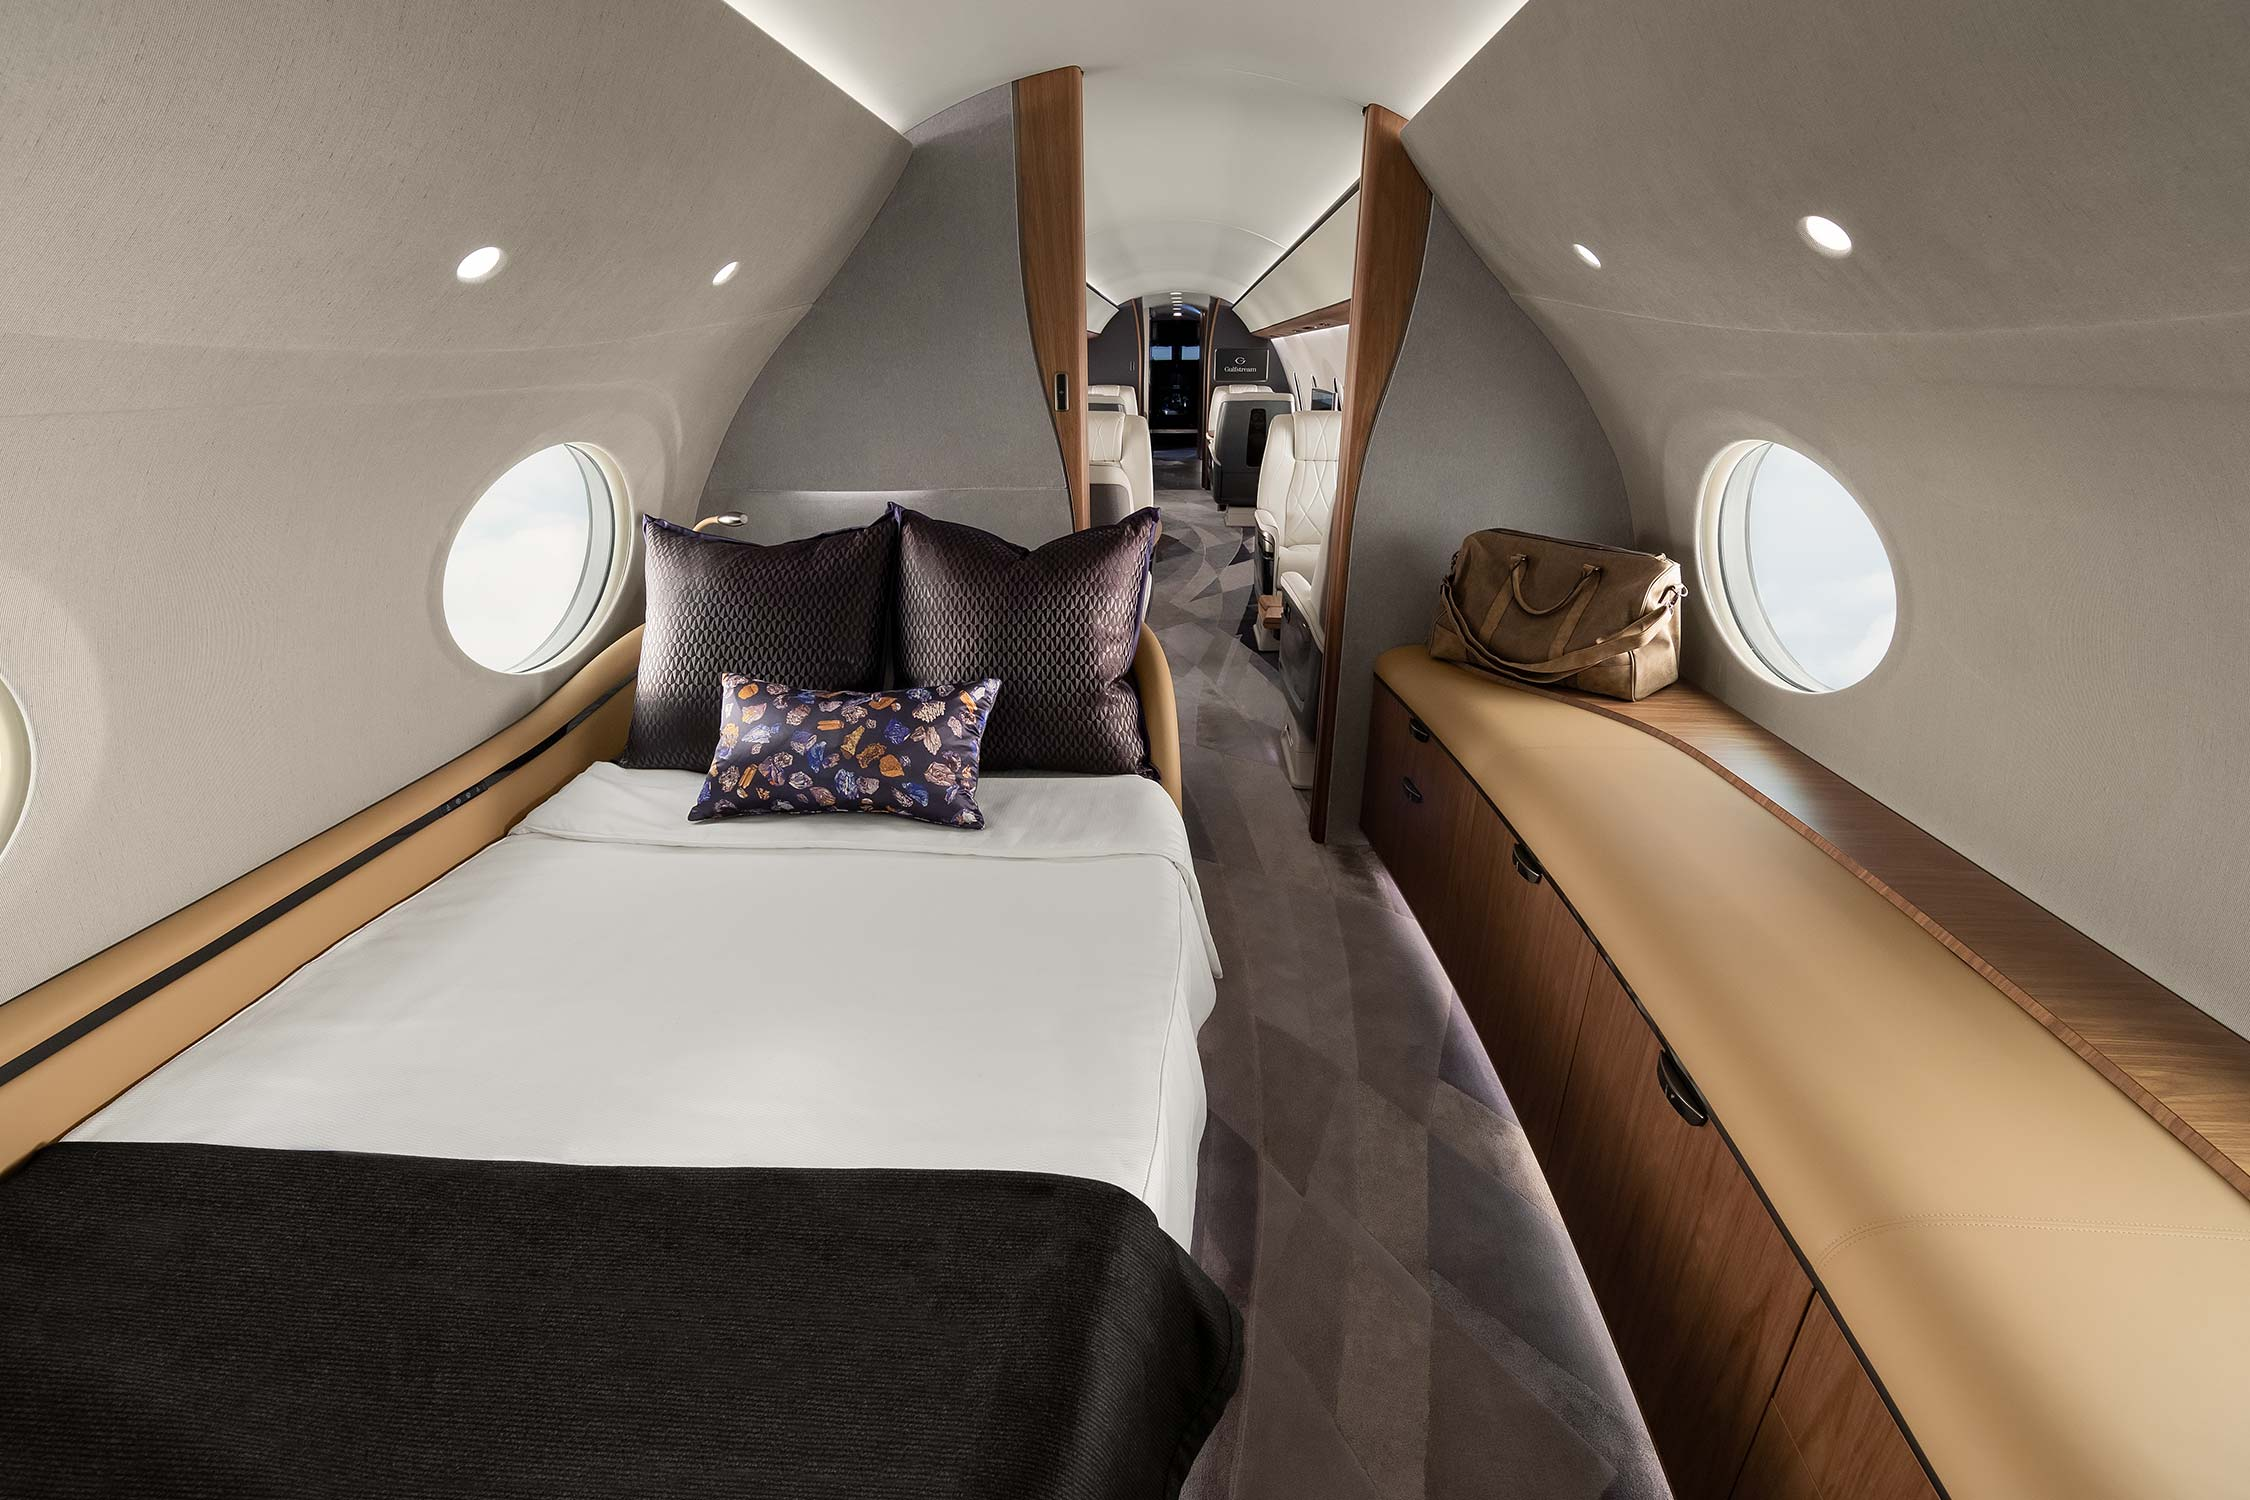 Sleeping quarters in a private airplane